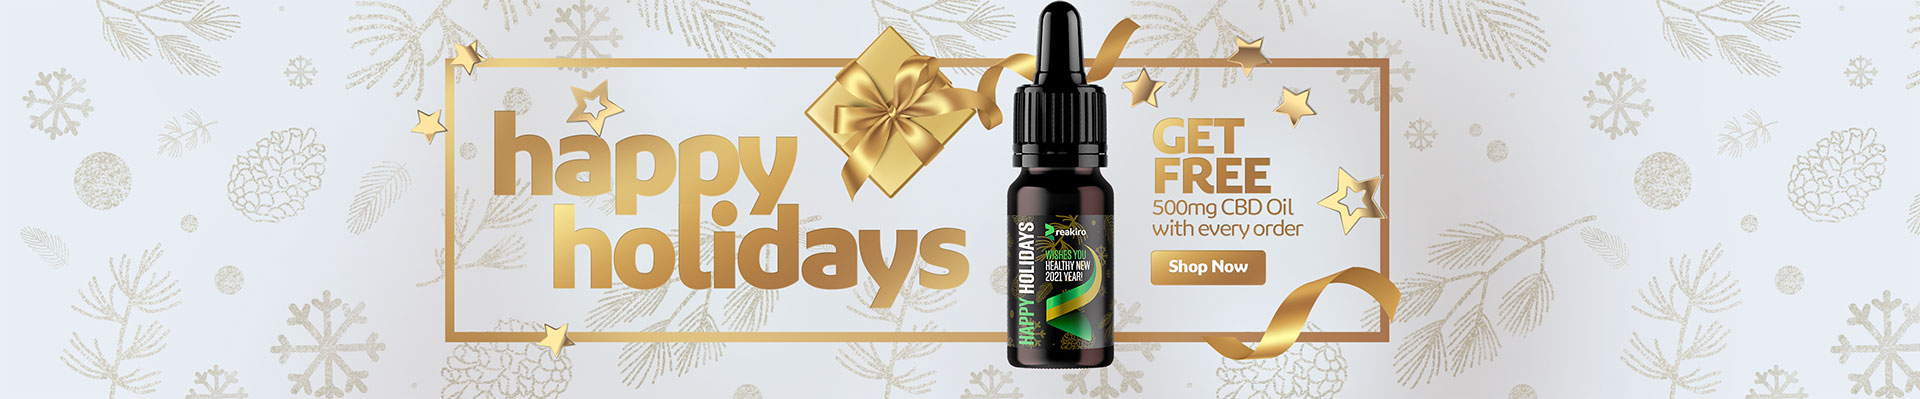 Get Free CBD Oil 500 mg with every order